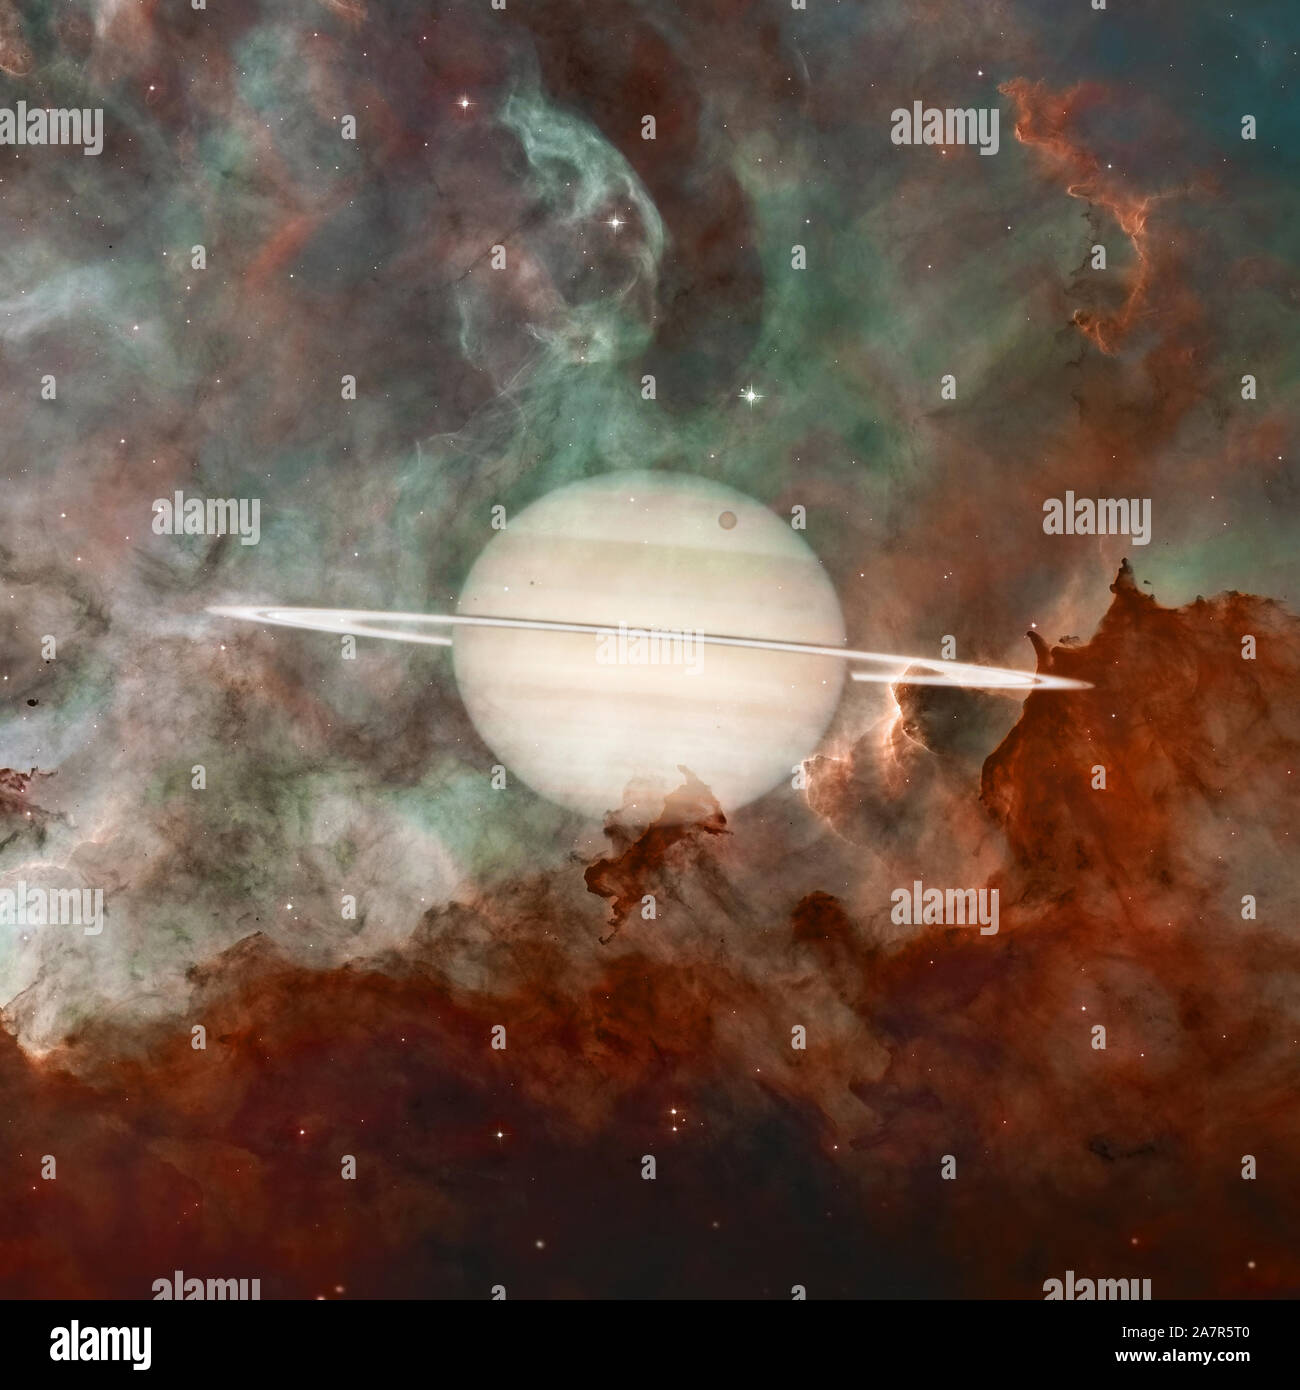 Saturn Planet Of The Solar System Science Wallpaper